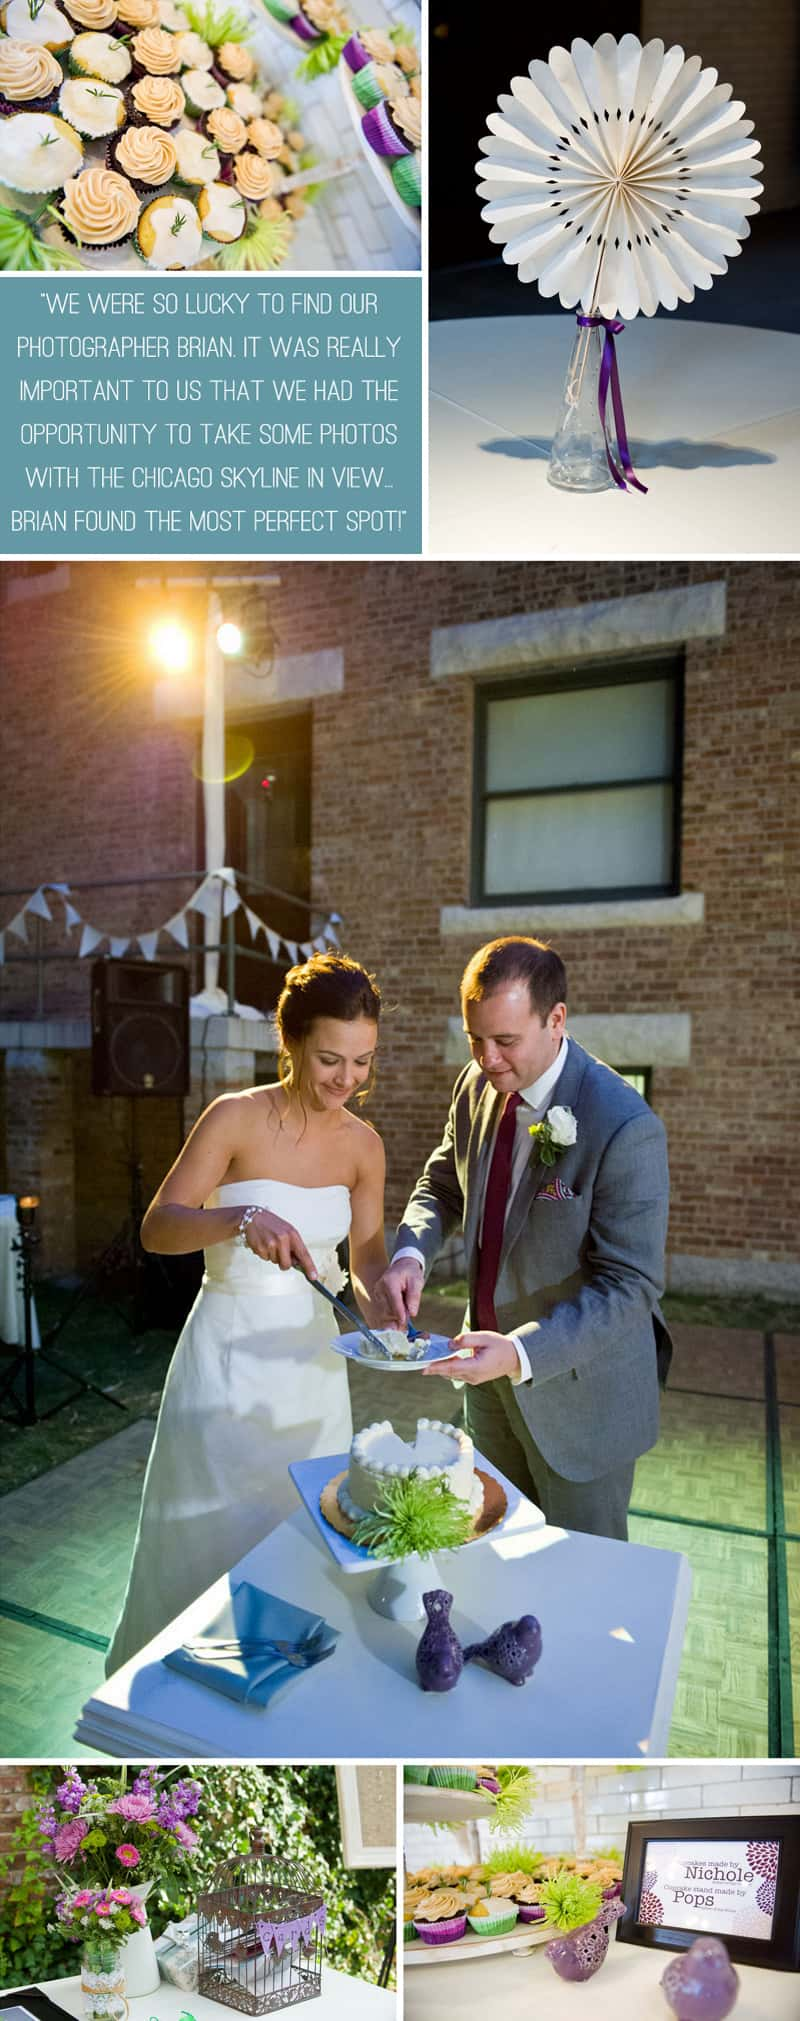 A Modern Wedding Dressed in Vintage Clothes 5